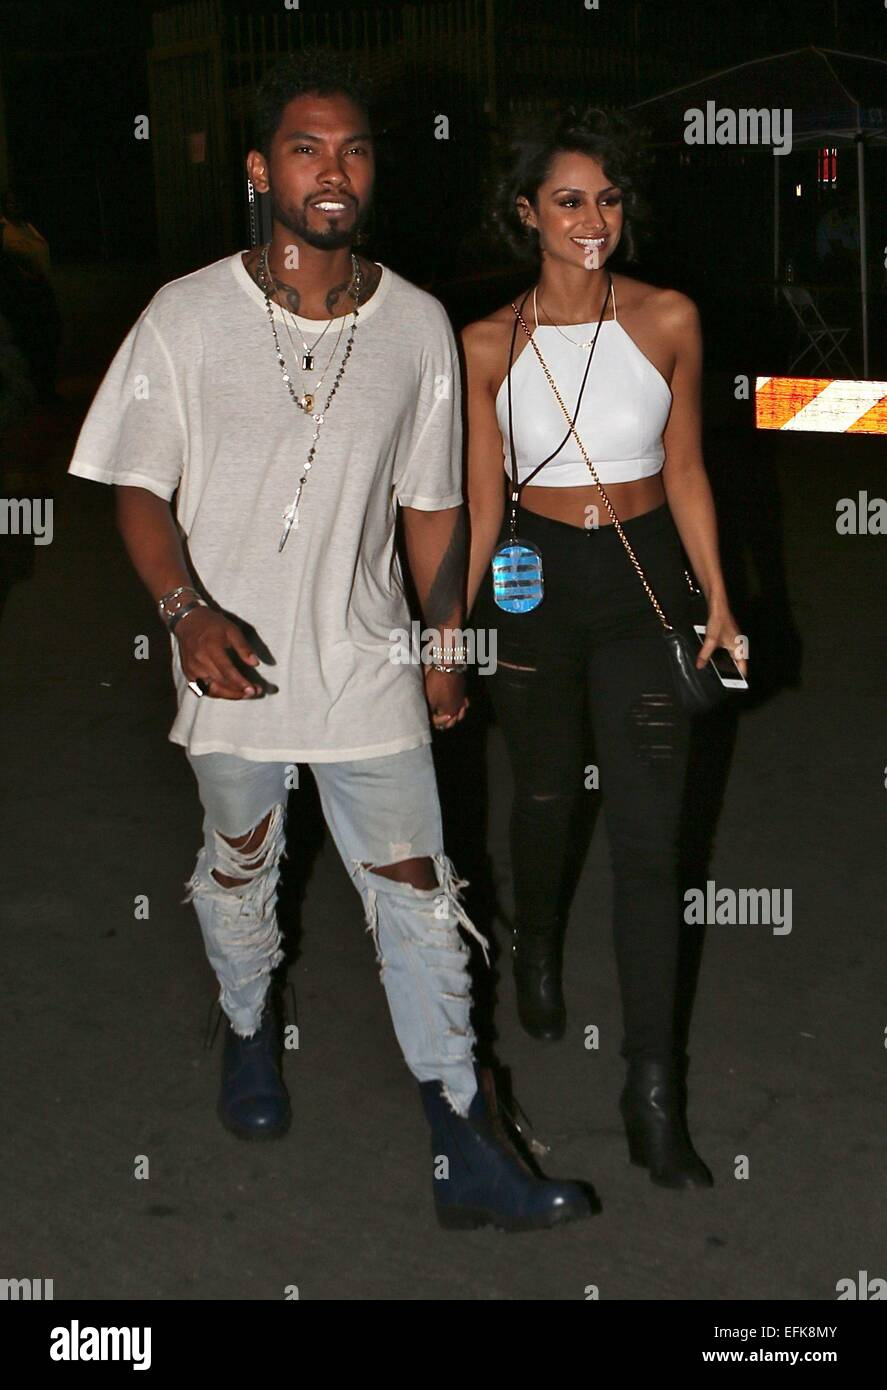 celebrities attend the beyonce and jay z concert at the rose bowl stock photo royalty free. Black Bedroom Furniture Sets. Home Design Ideas